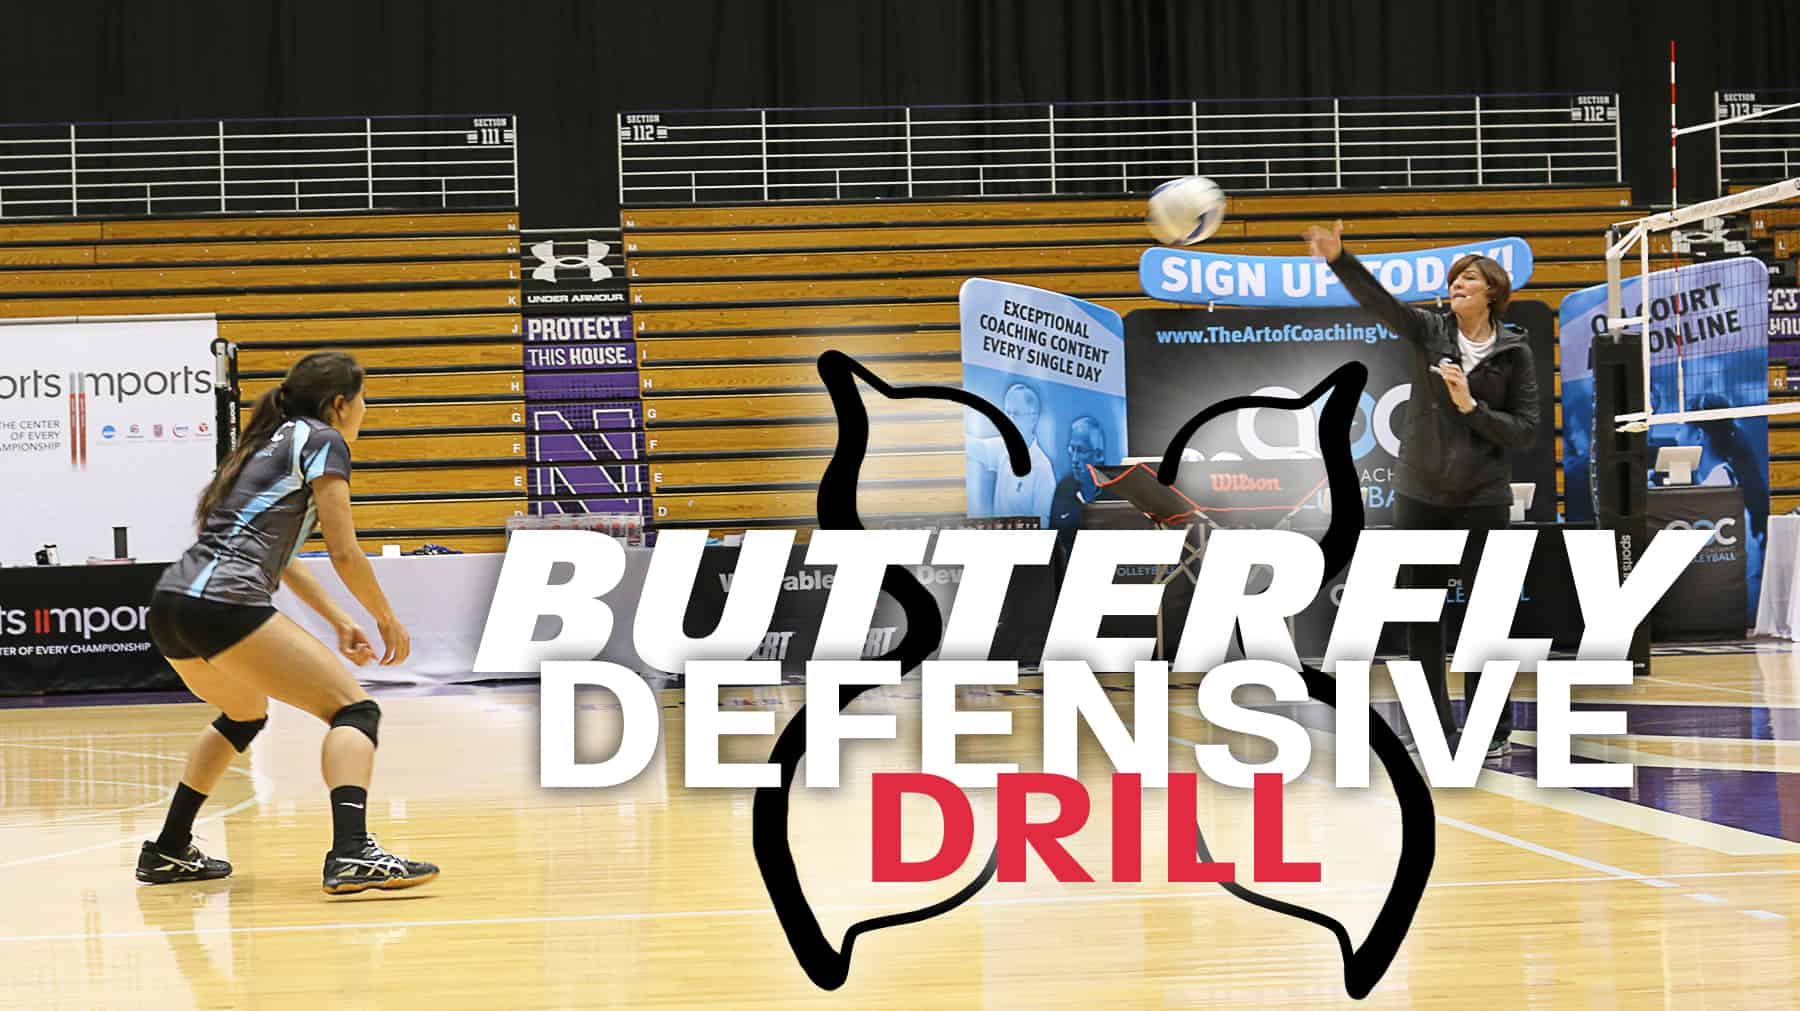 Cathy George Butterfly Defensive Drill